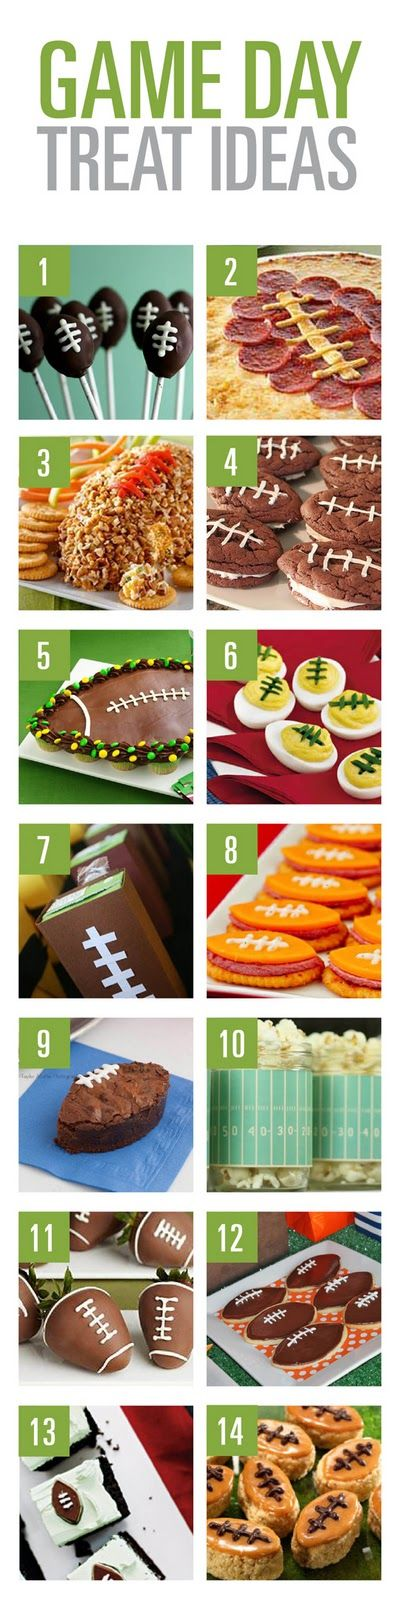 Football Game Day Treats